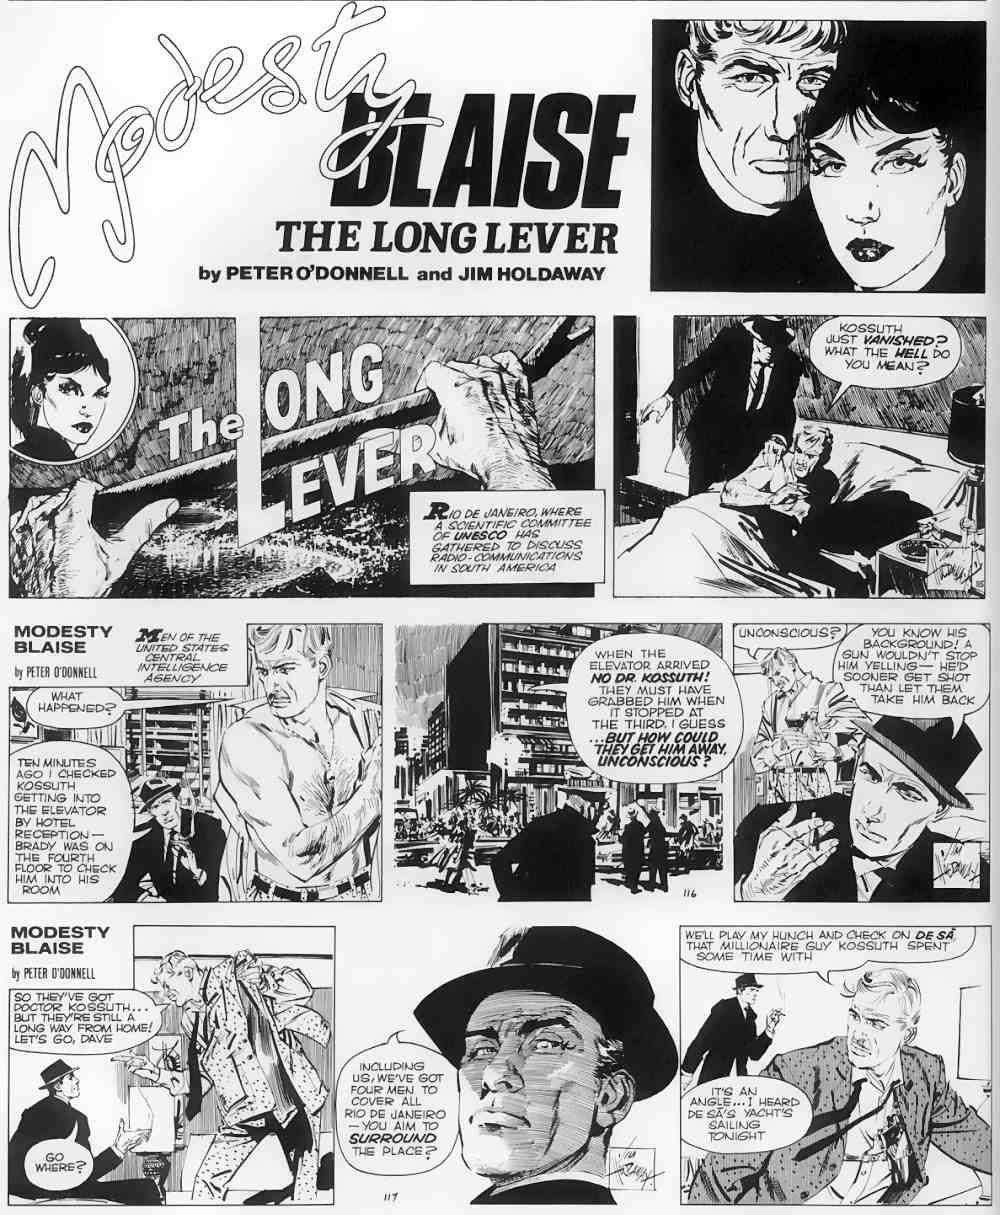 Modesty Blaise NP - 02 - The Long Lever